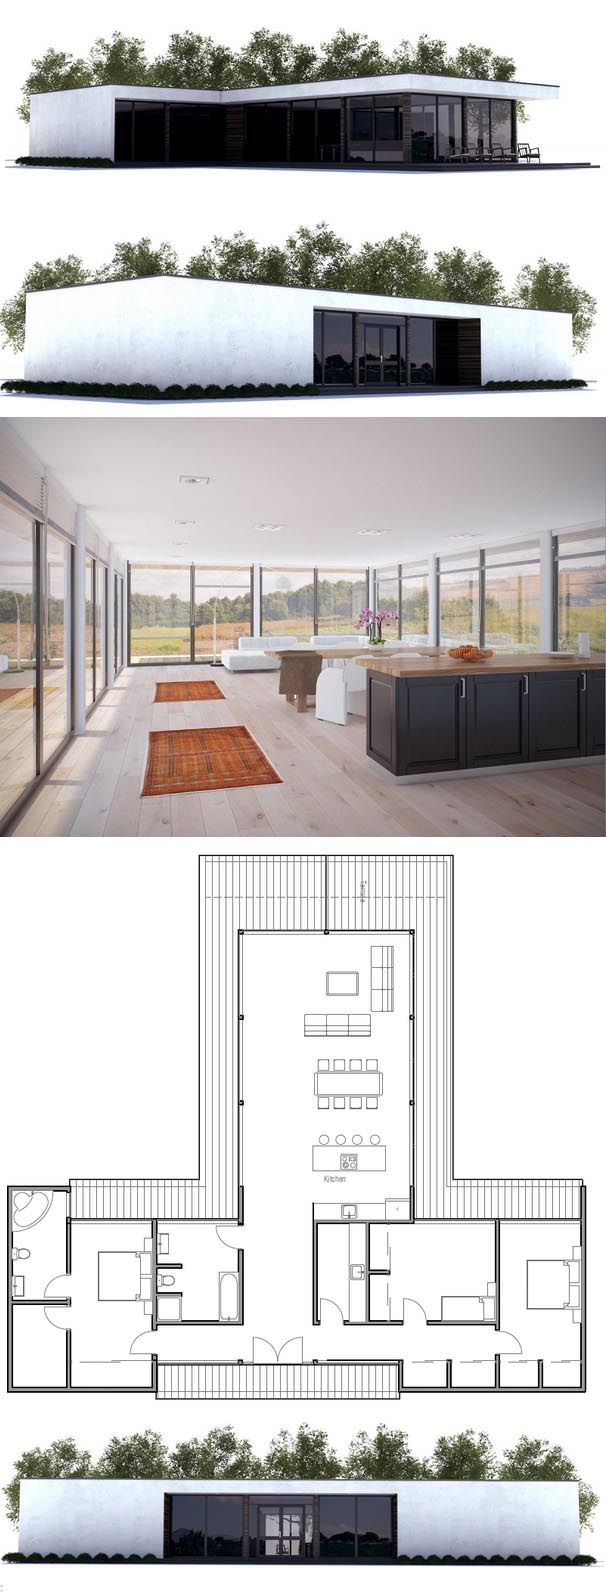 In secondary bath, use pocket doors and move sink to wall shared with exterior, then have a second entry to the bathroom from the secondary bedroom.